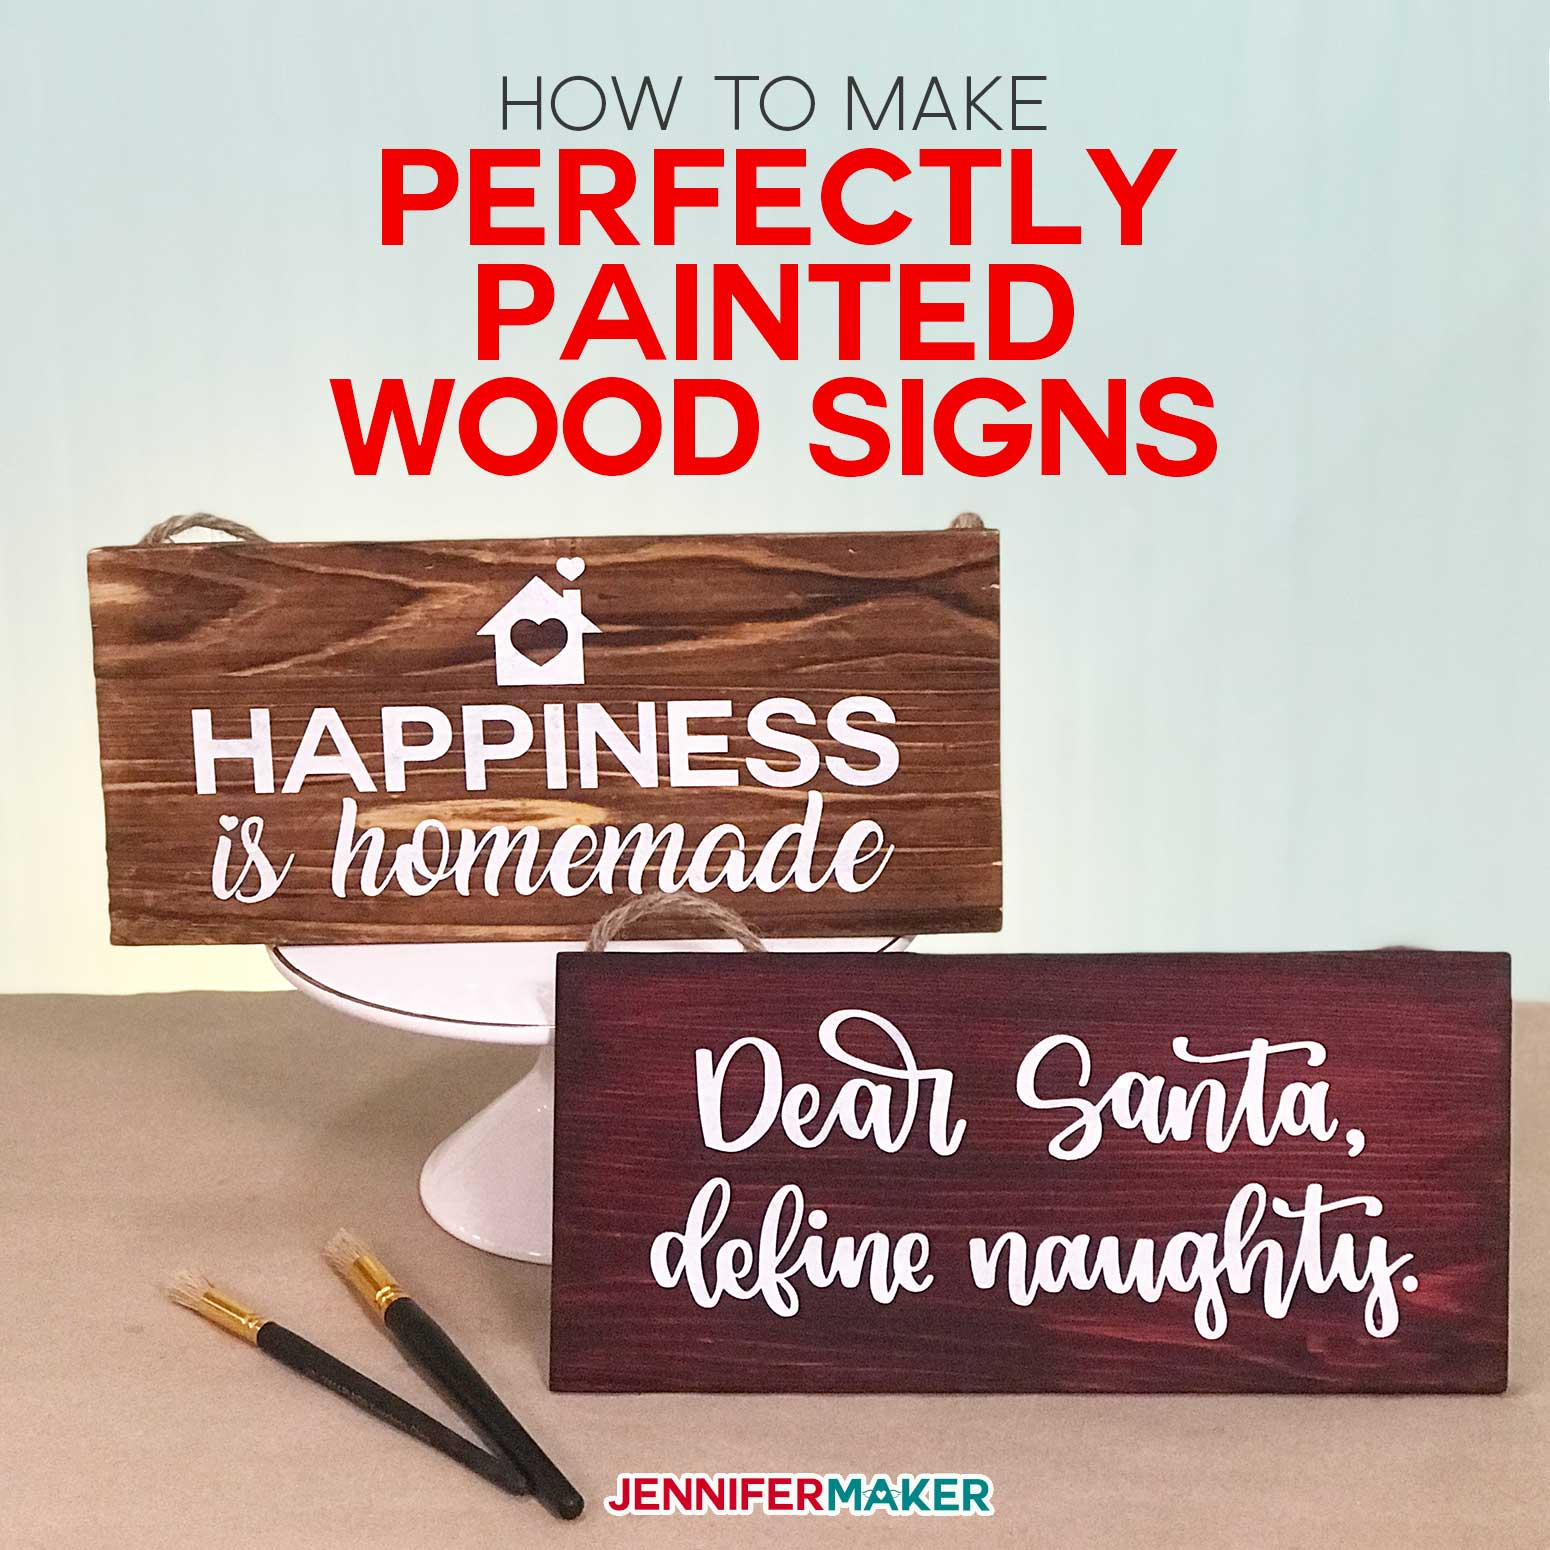 How To Use Vinyl Stencils To Paint Wood Signs Perfectly